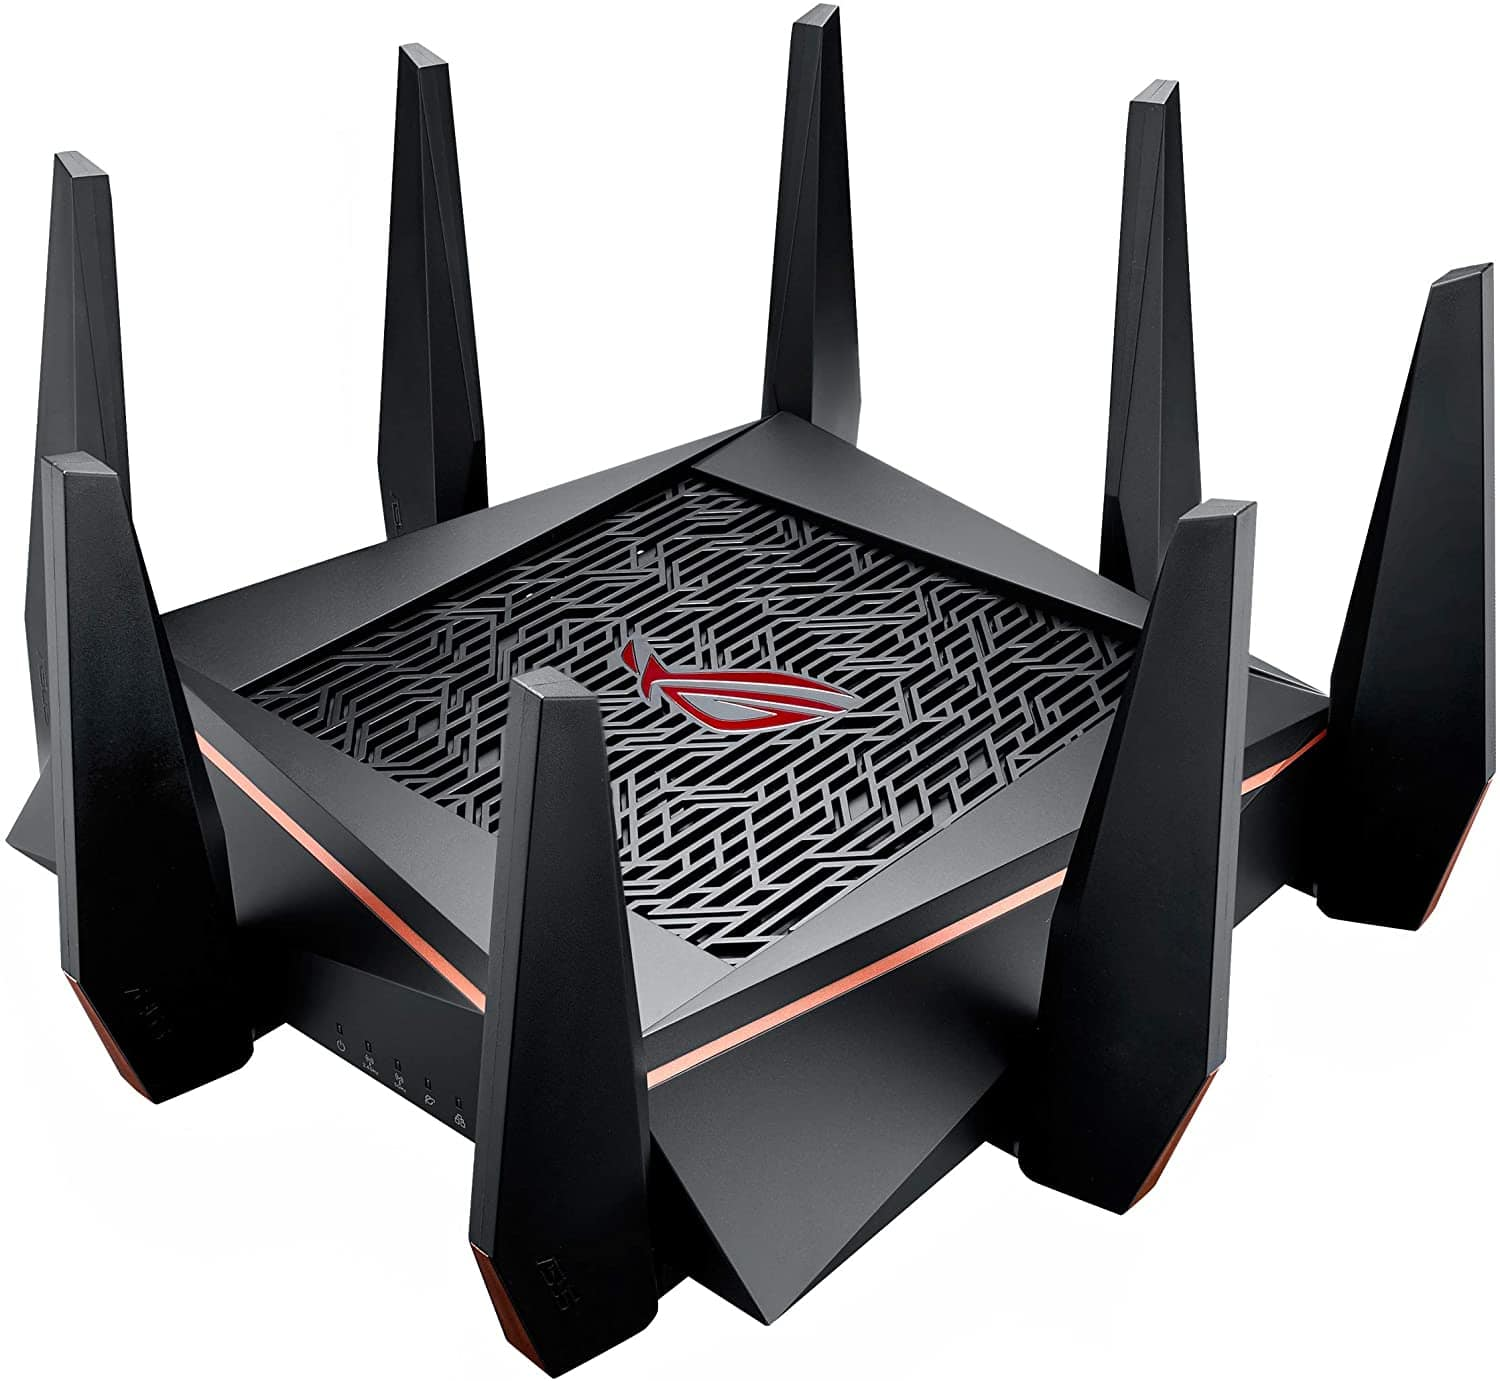 ASUS GT-AC3000 Gaming Router Tri-band WiFi For VR & 4K streaming